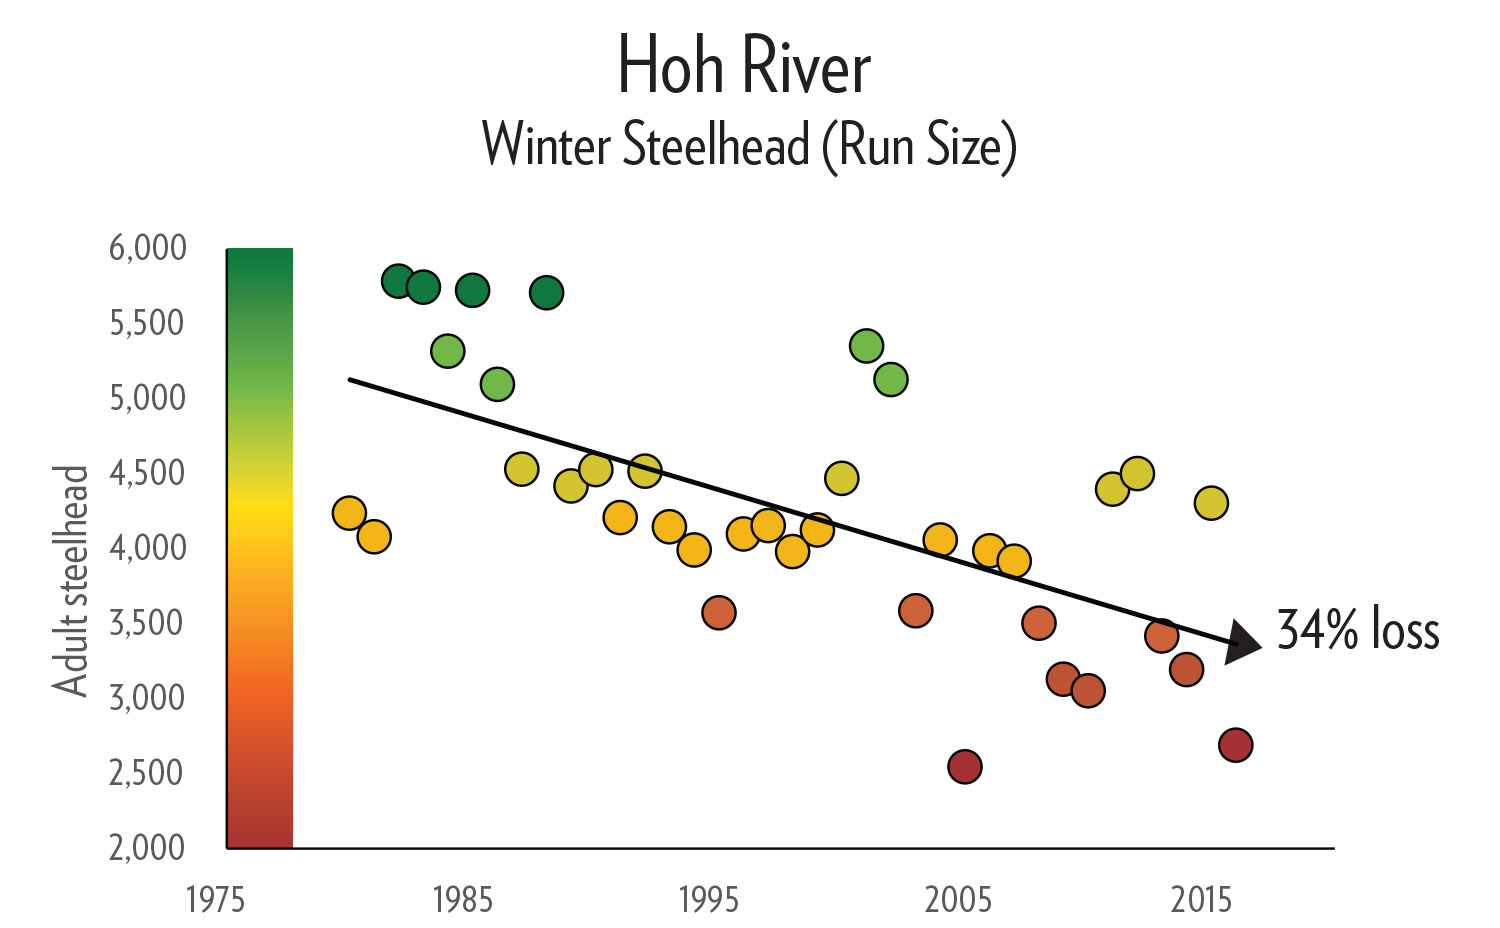 Hoh River Steelhead Decline